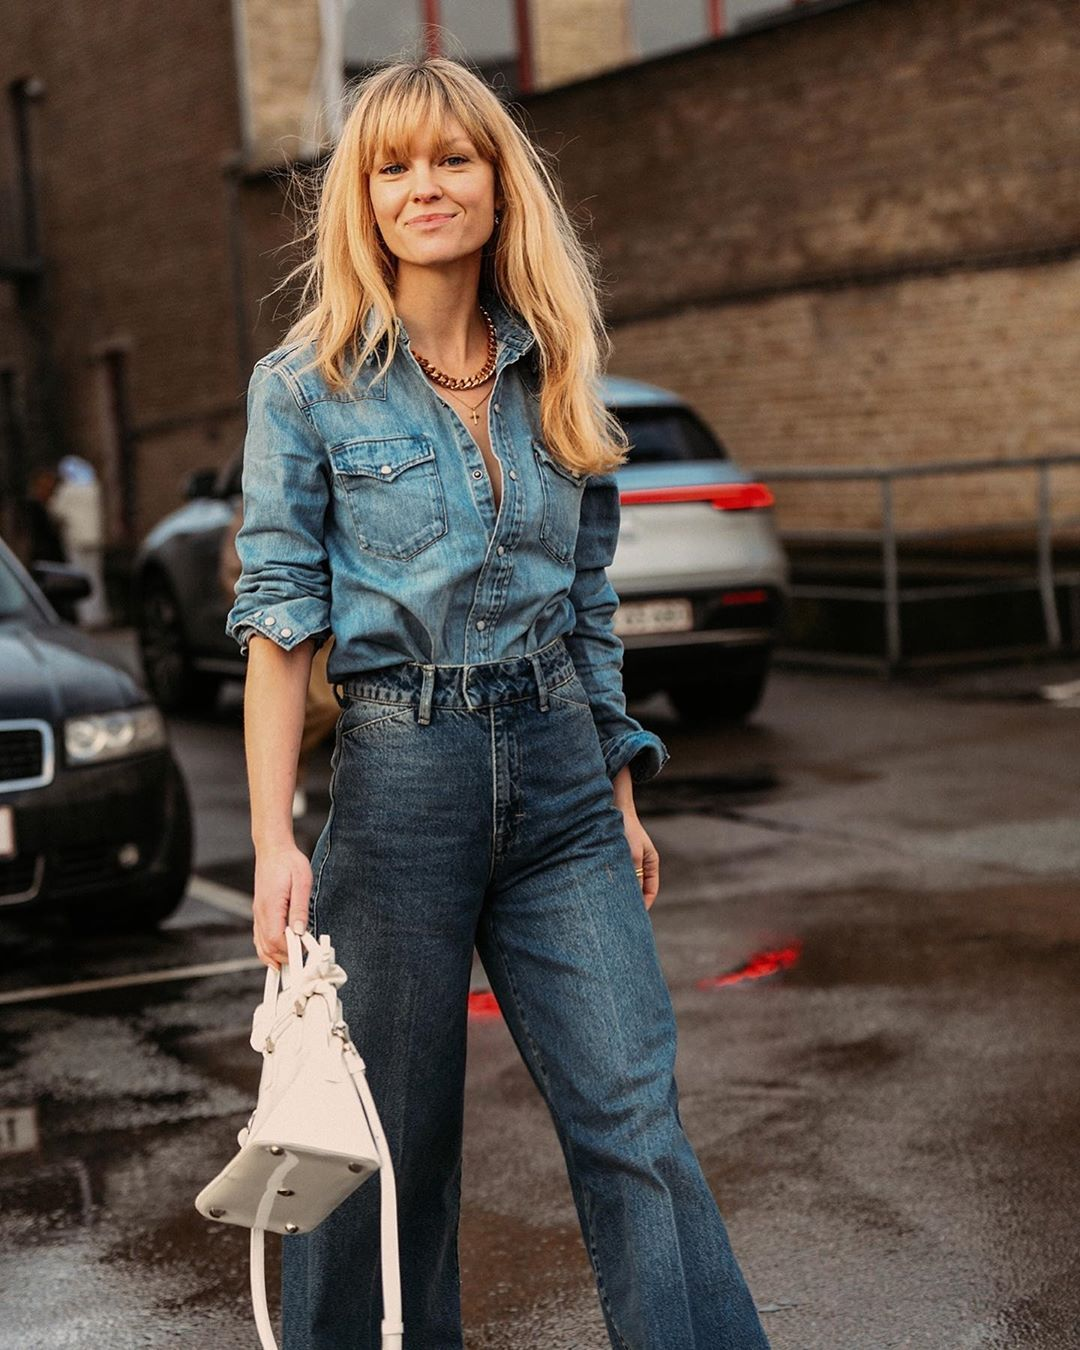 jeanette-madsen-denim-on-denim-copenhagen-fashion-week-fall-2020-street-style